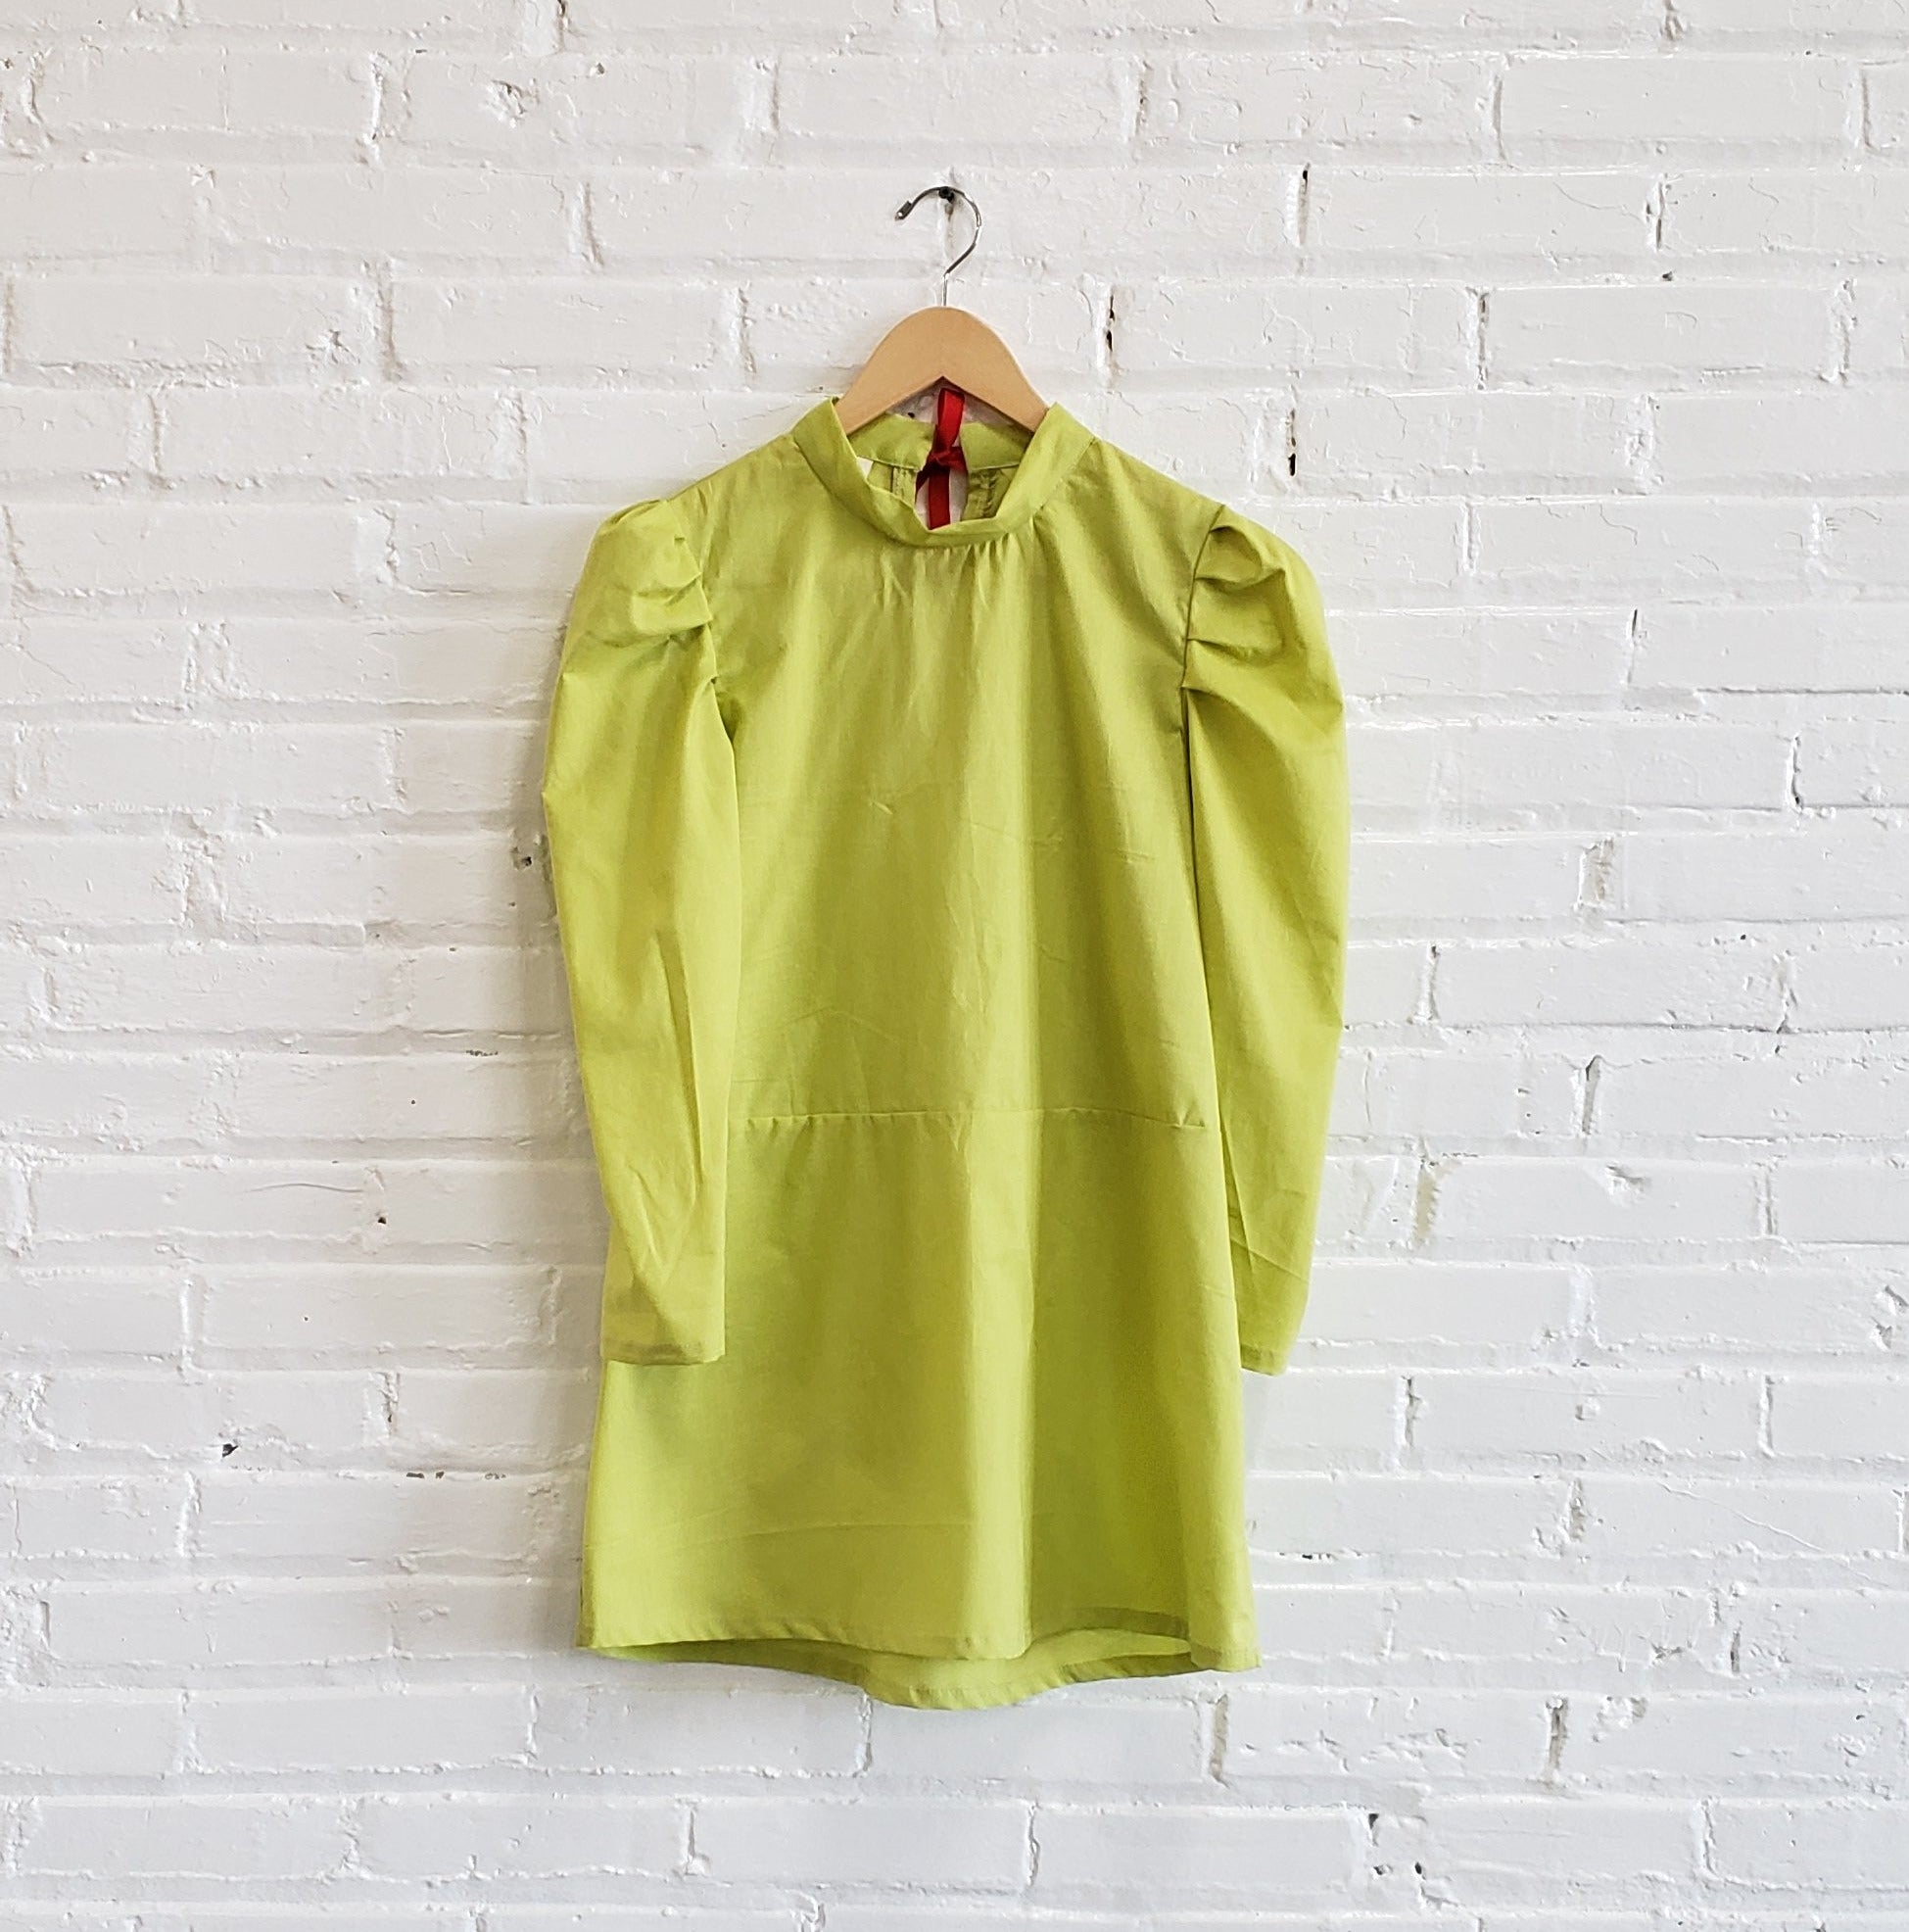 line green mini dress with puffy full length sleeves, displayed hanging against a white brick wall